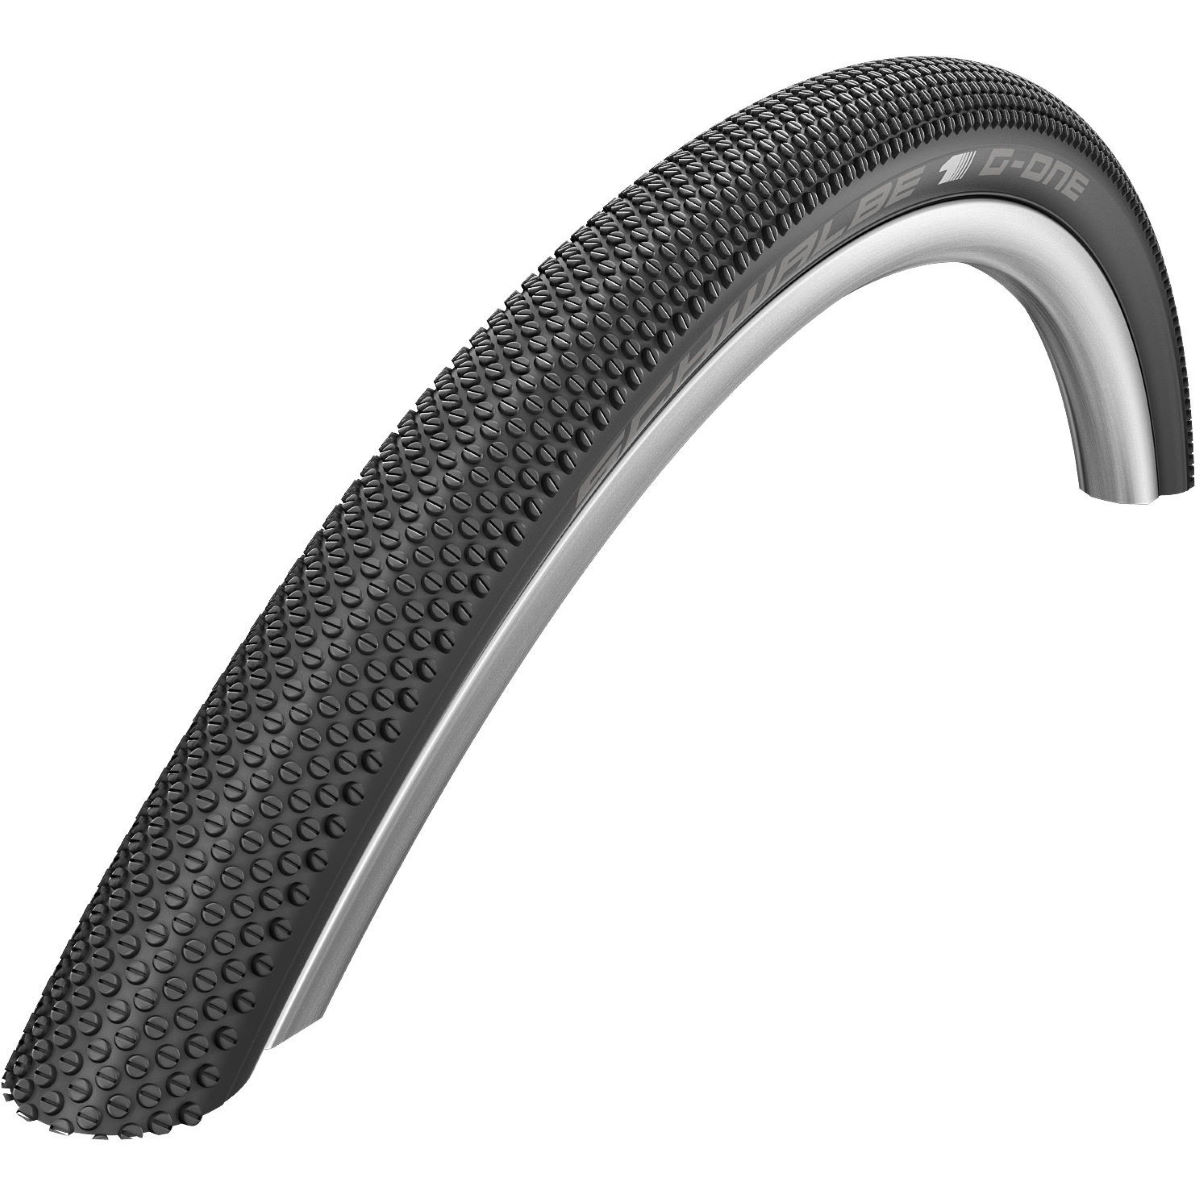 Pneu VTT Schwalbe G-One Speed SnakeSkin TL-Easy (souple) - 2.35' 27.5'